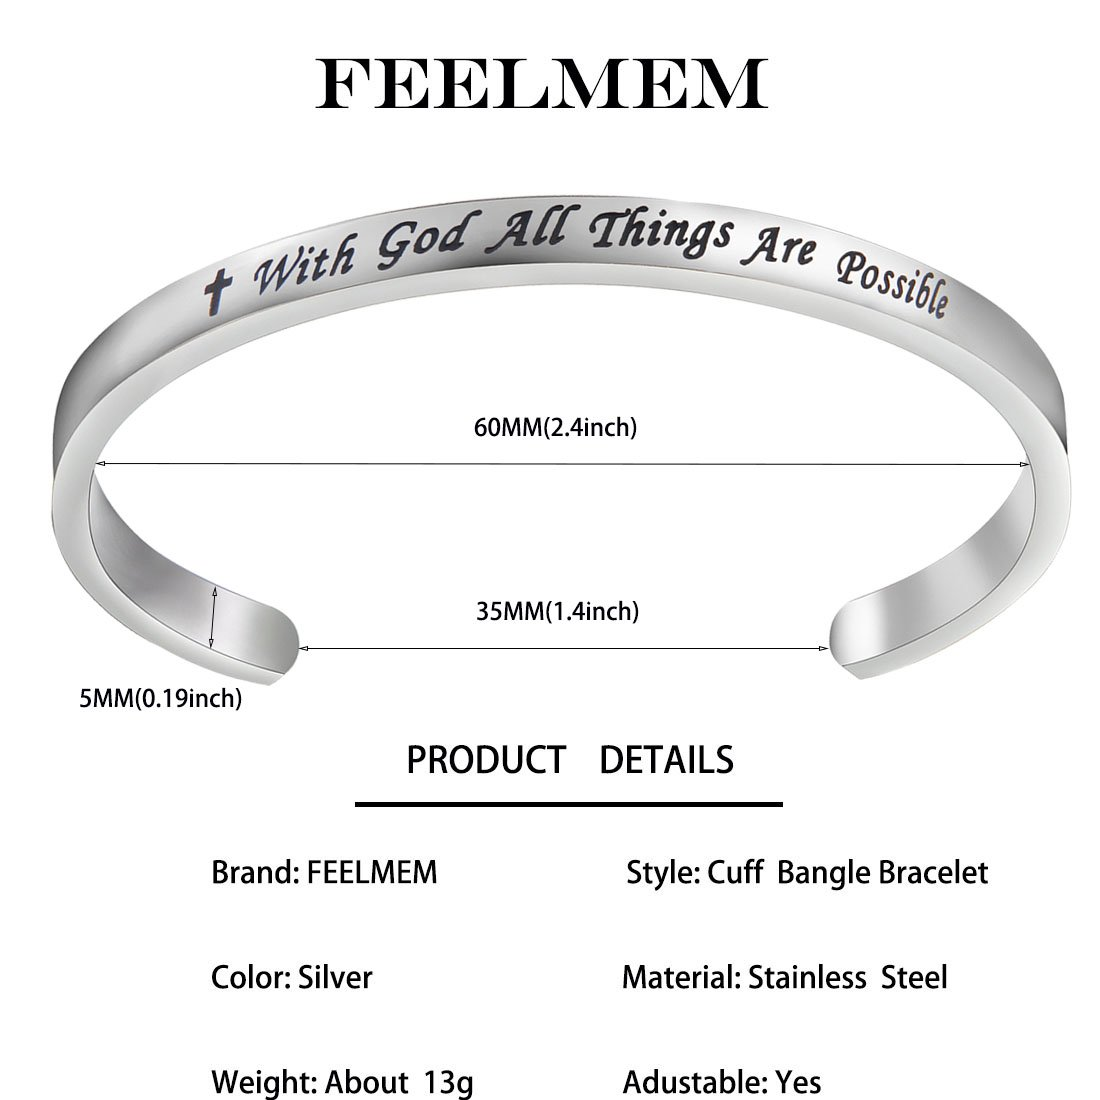 FEELMEM Matthew 19:26 With God All Things Are Possible Christian Jewelry Cuff Bangle Bracelet,Religous Faith Jewelry Inspirational Christian Gifts